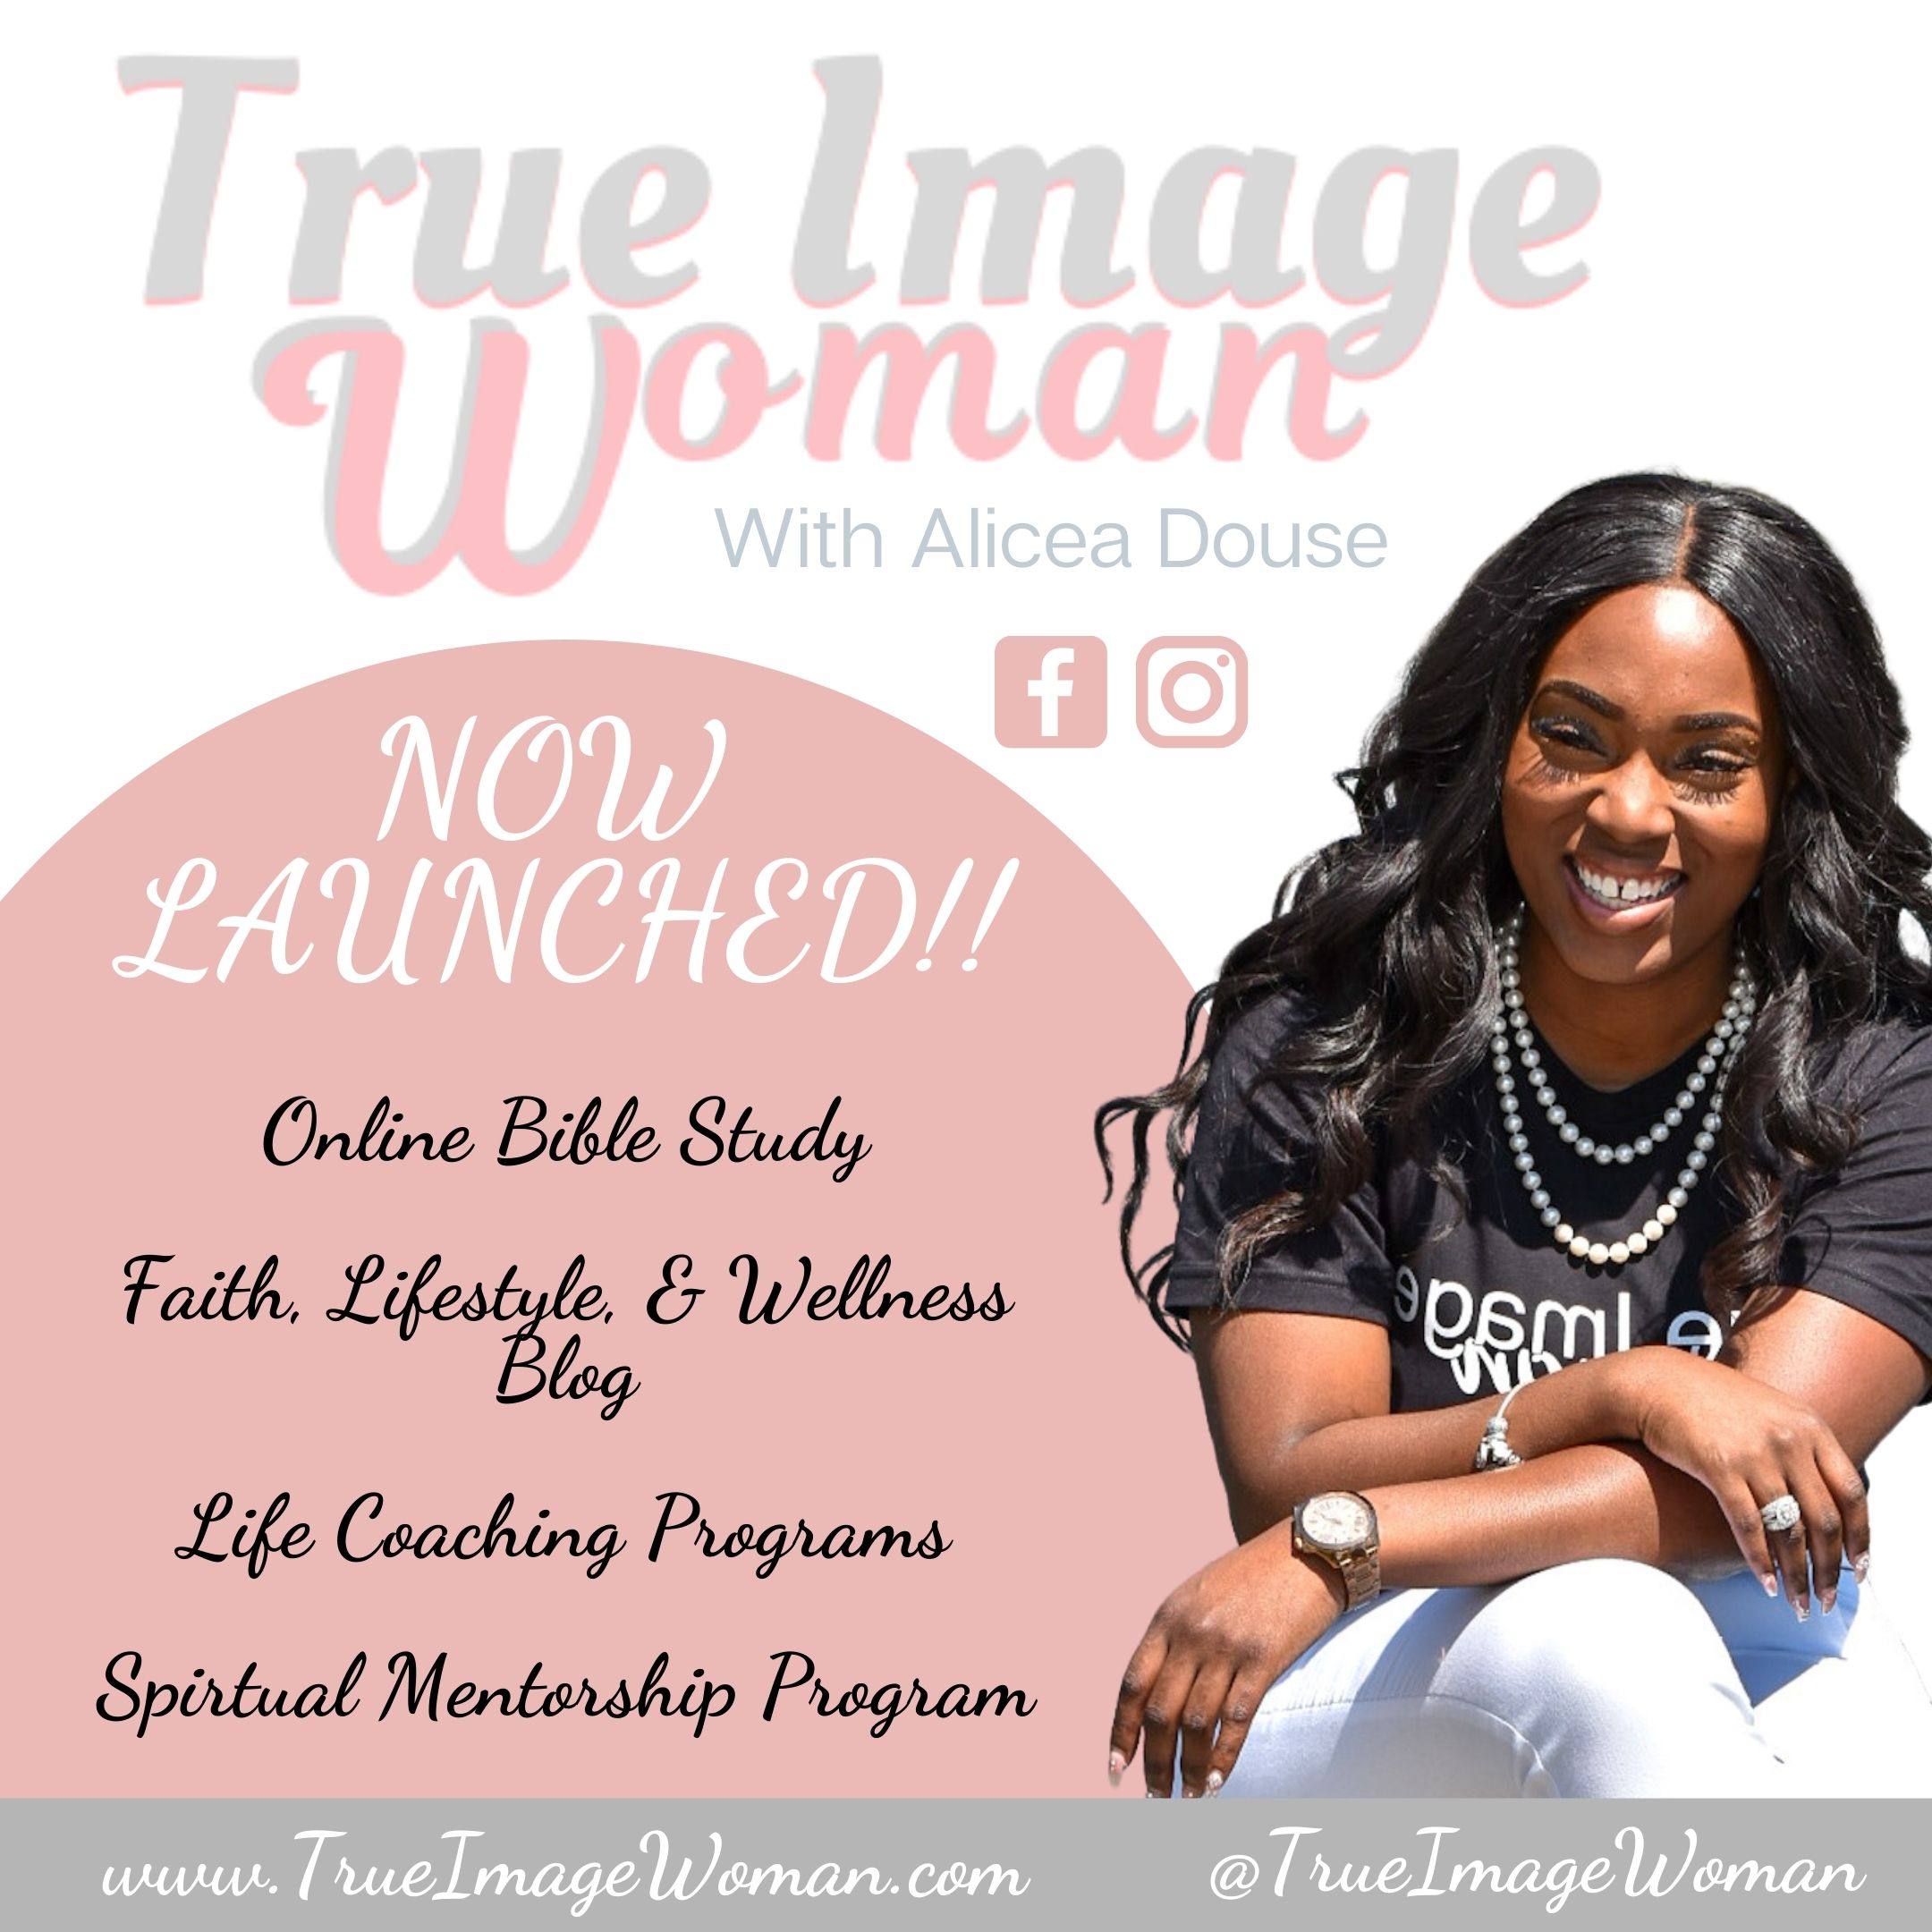 True Image Woman Promo Flyers